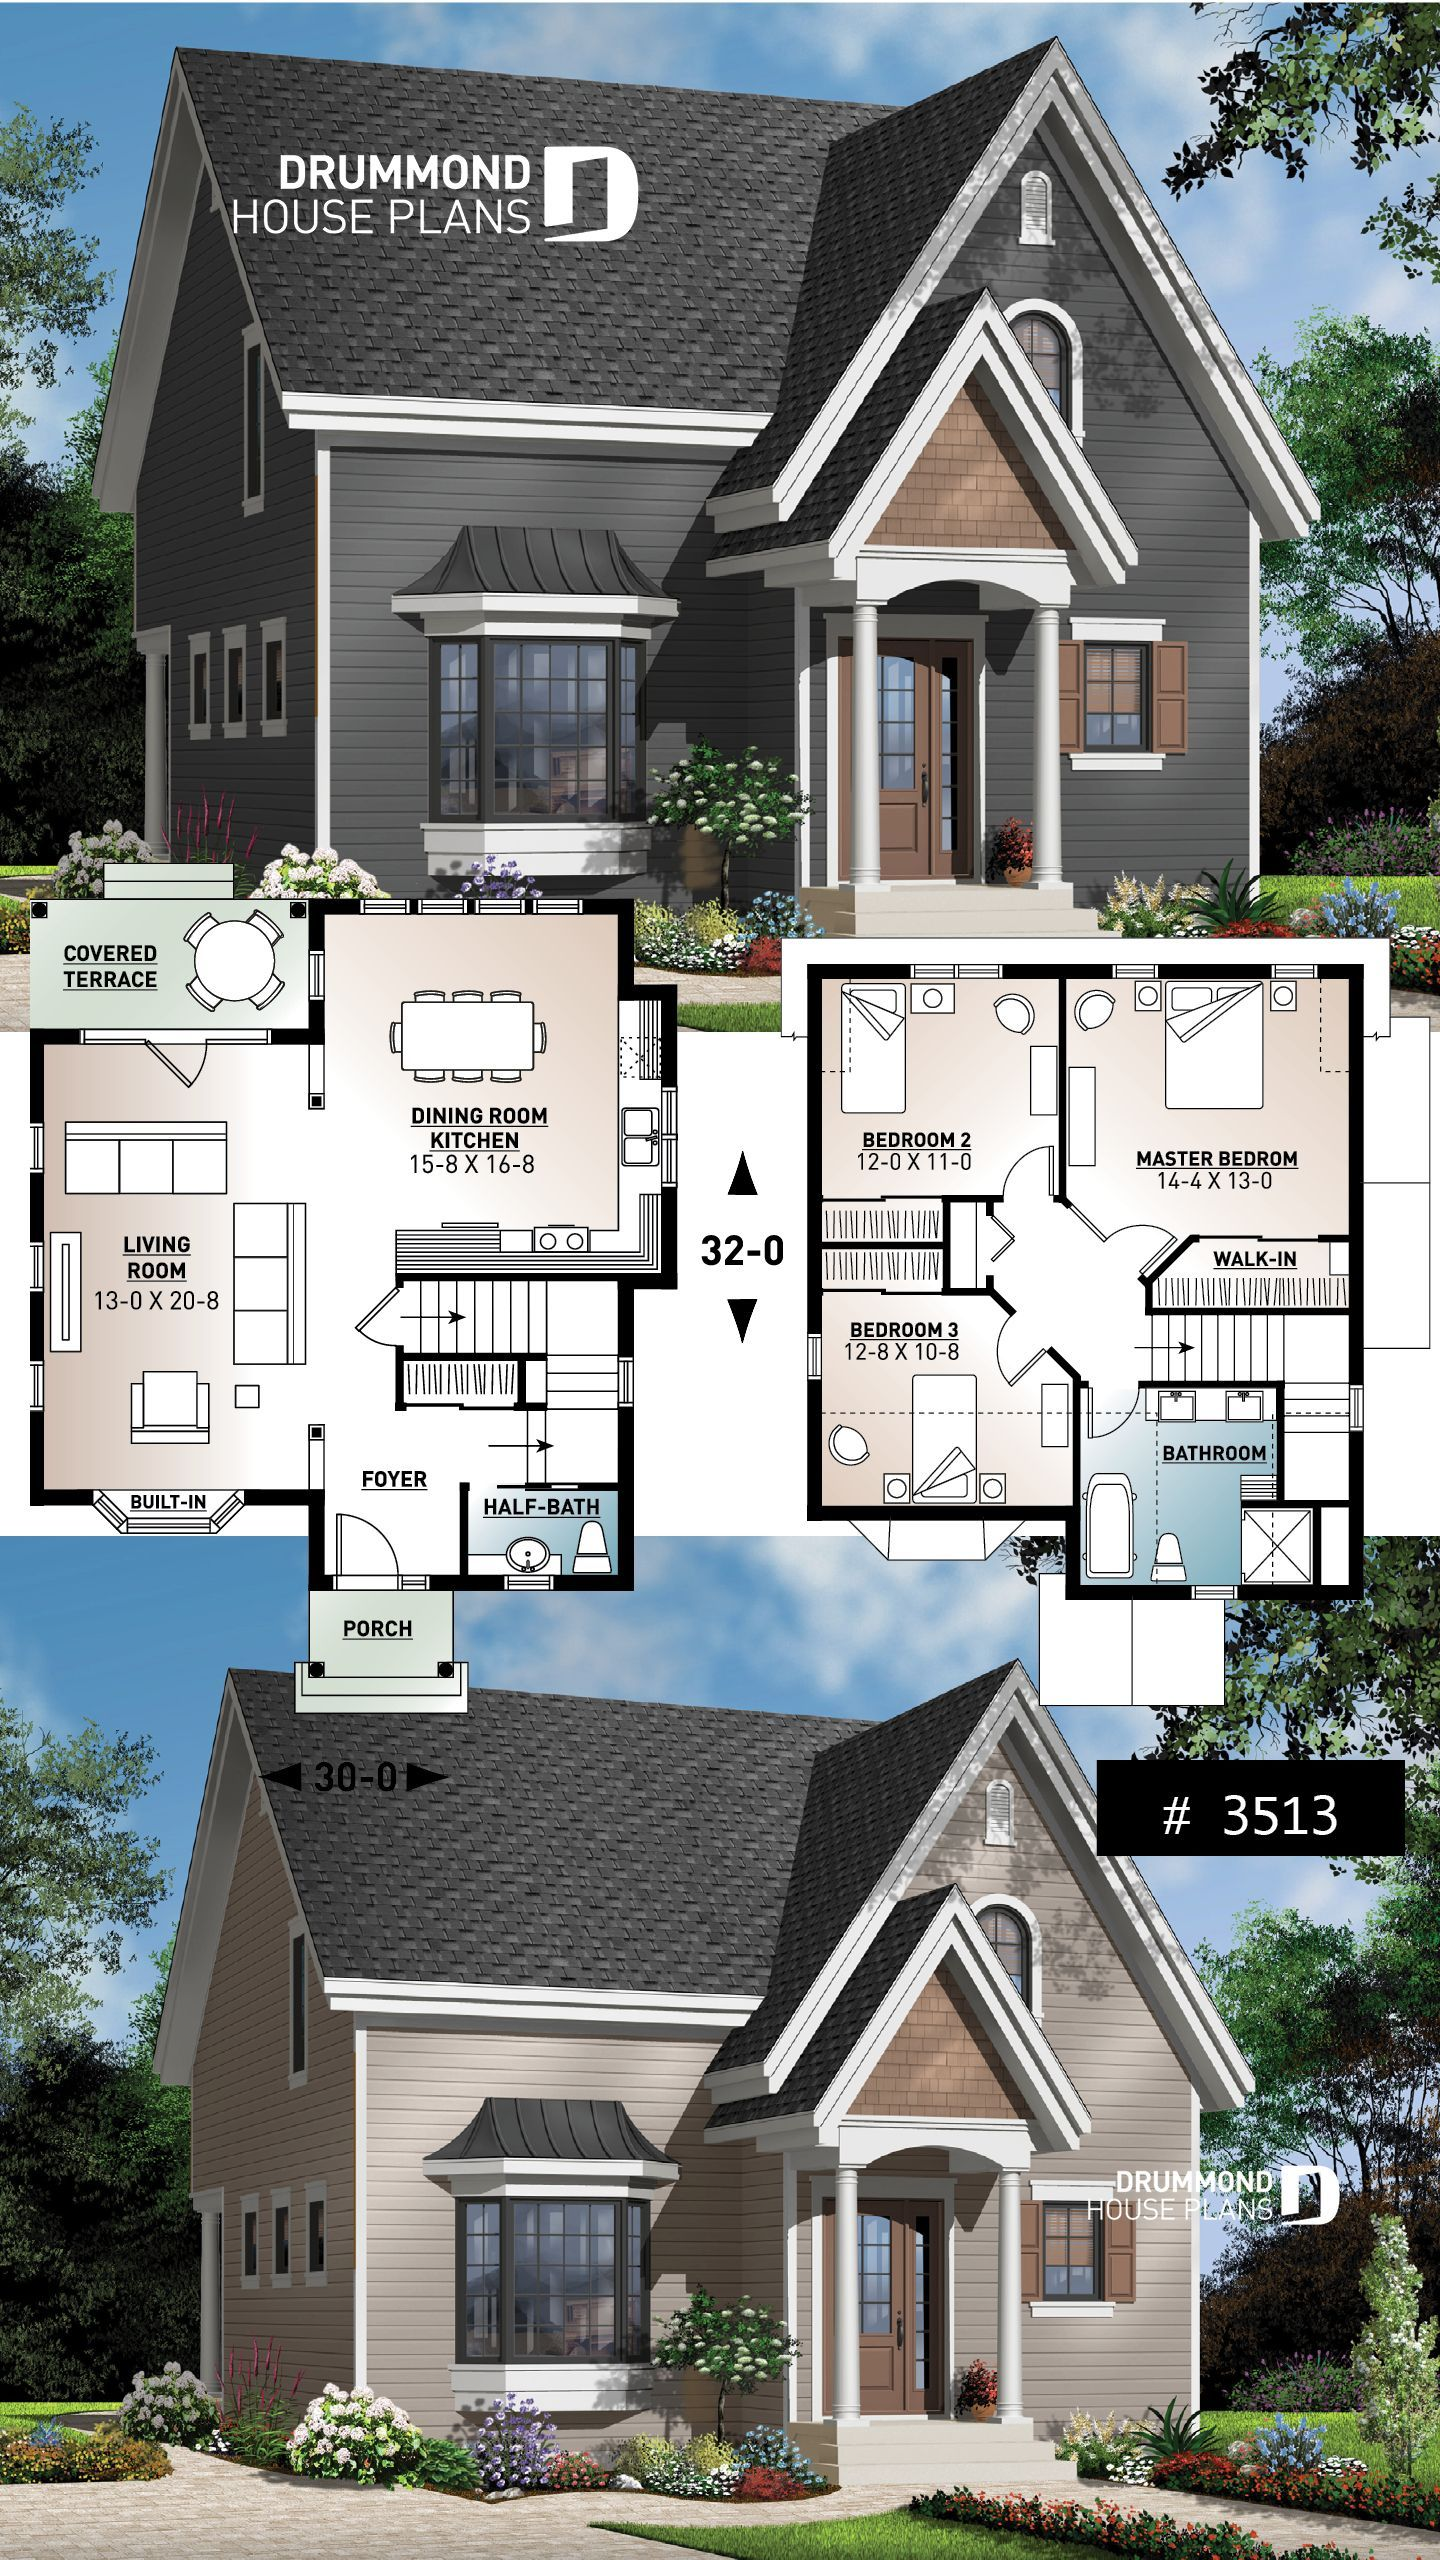 Affordable 2 Storey Scandinavian Inspired House Plan Affordable 3 Bedroom Traditional Design With In 2020 Small House Blueprints House Blueprints Sims House Design